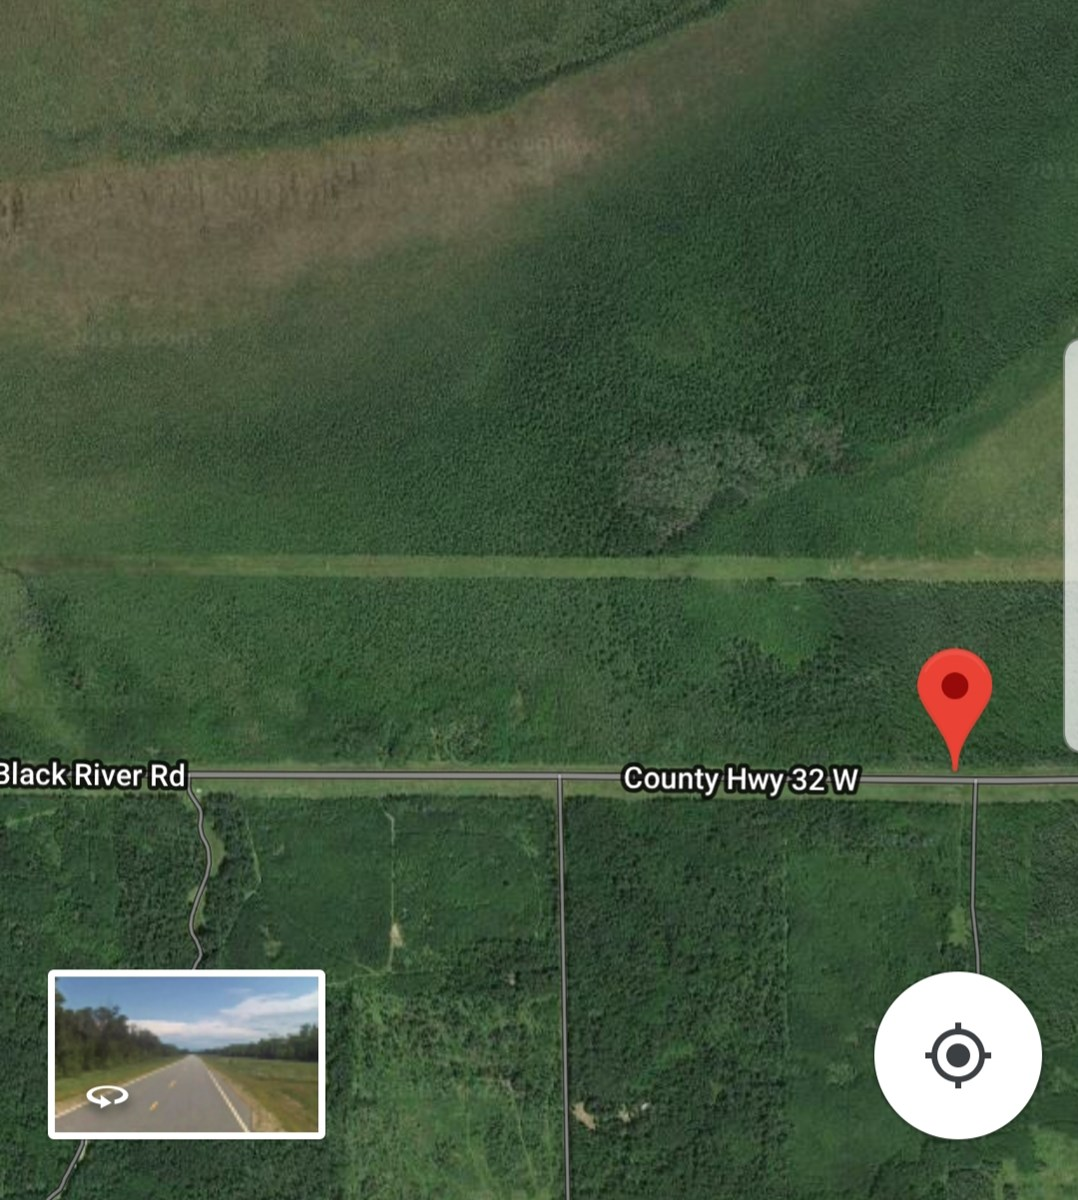 Land in Loman, MN for sale Koochiching County